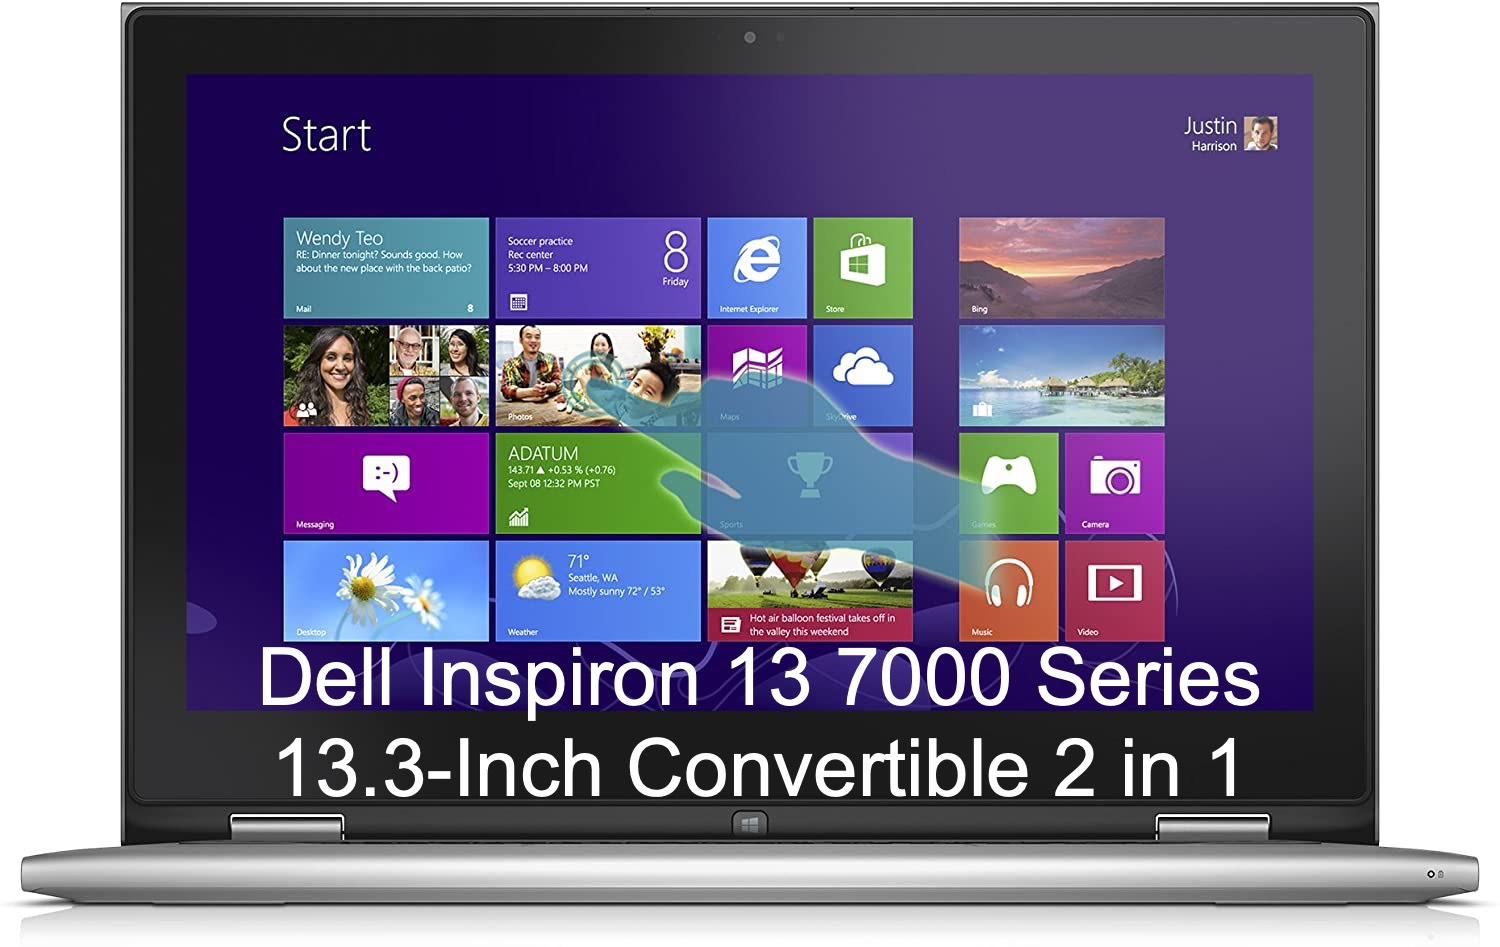 Dell Inspiron 13 7000 Series 13.3-Inch Convertible 2 in 1